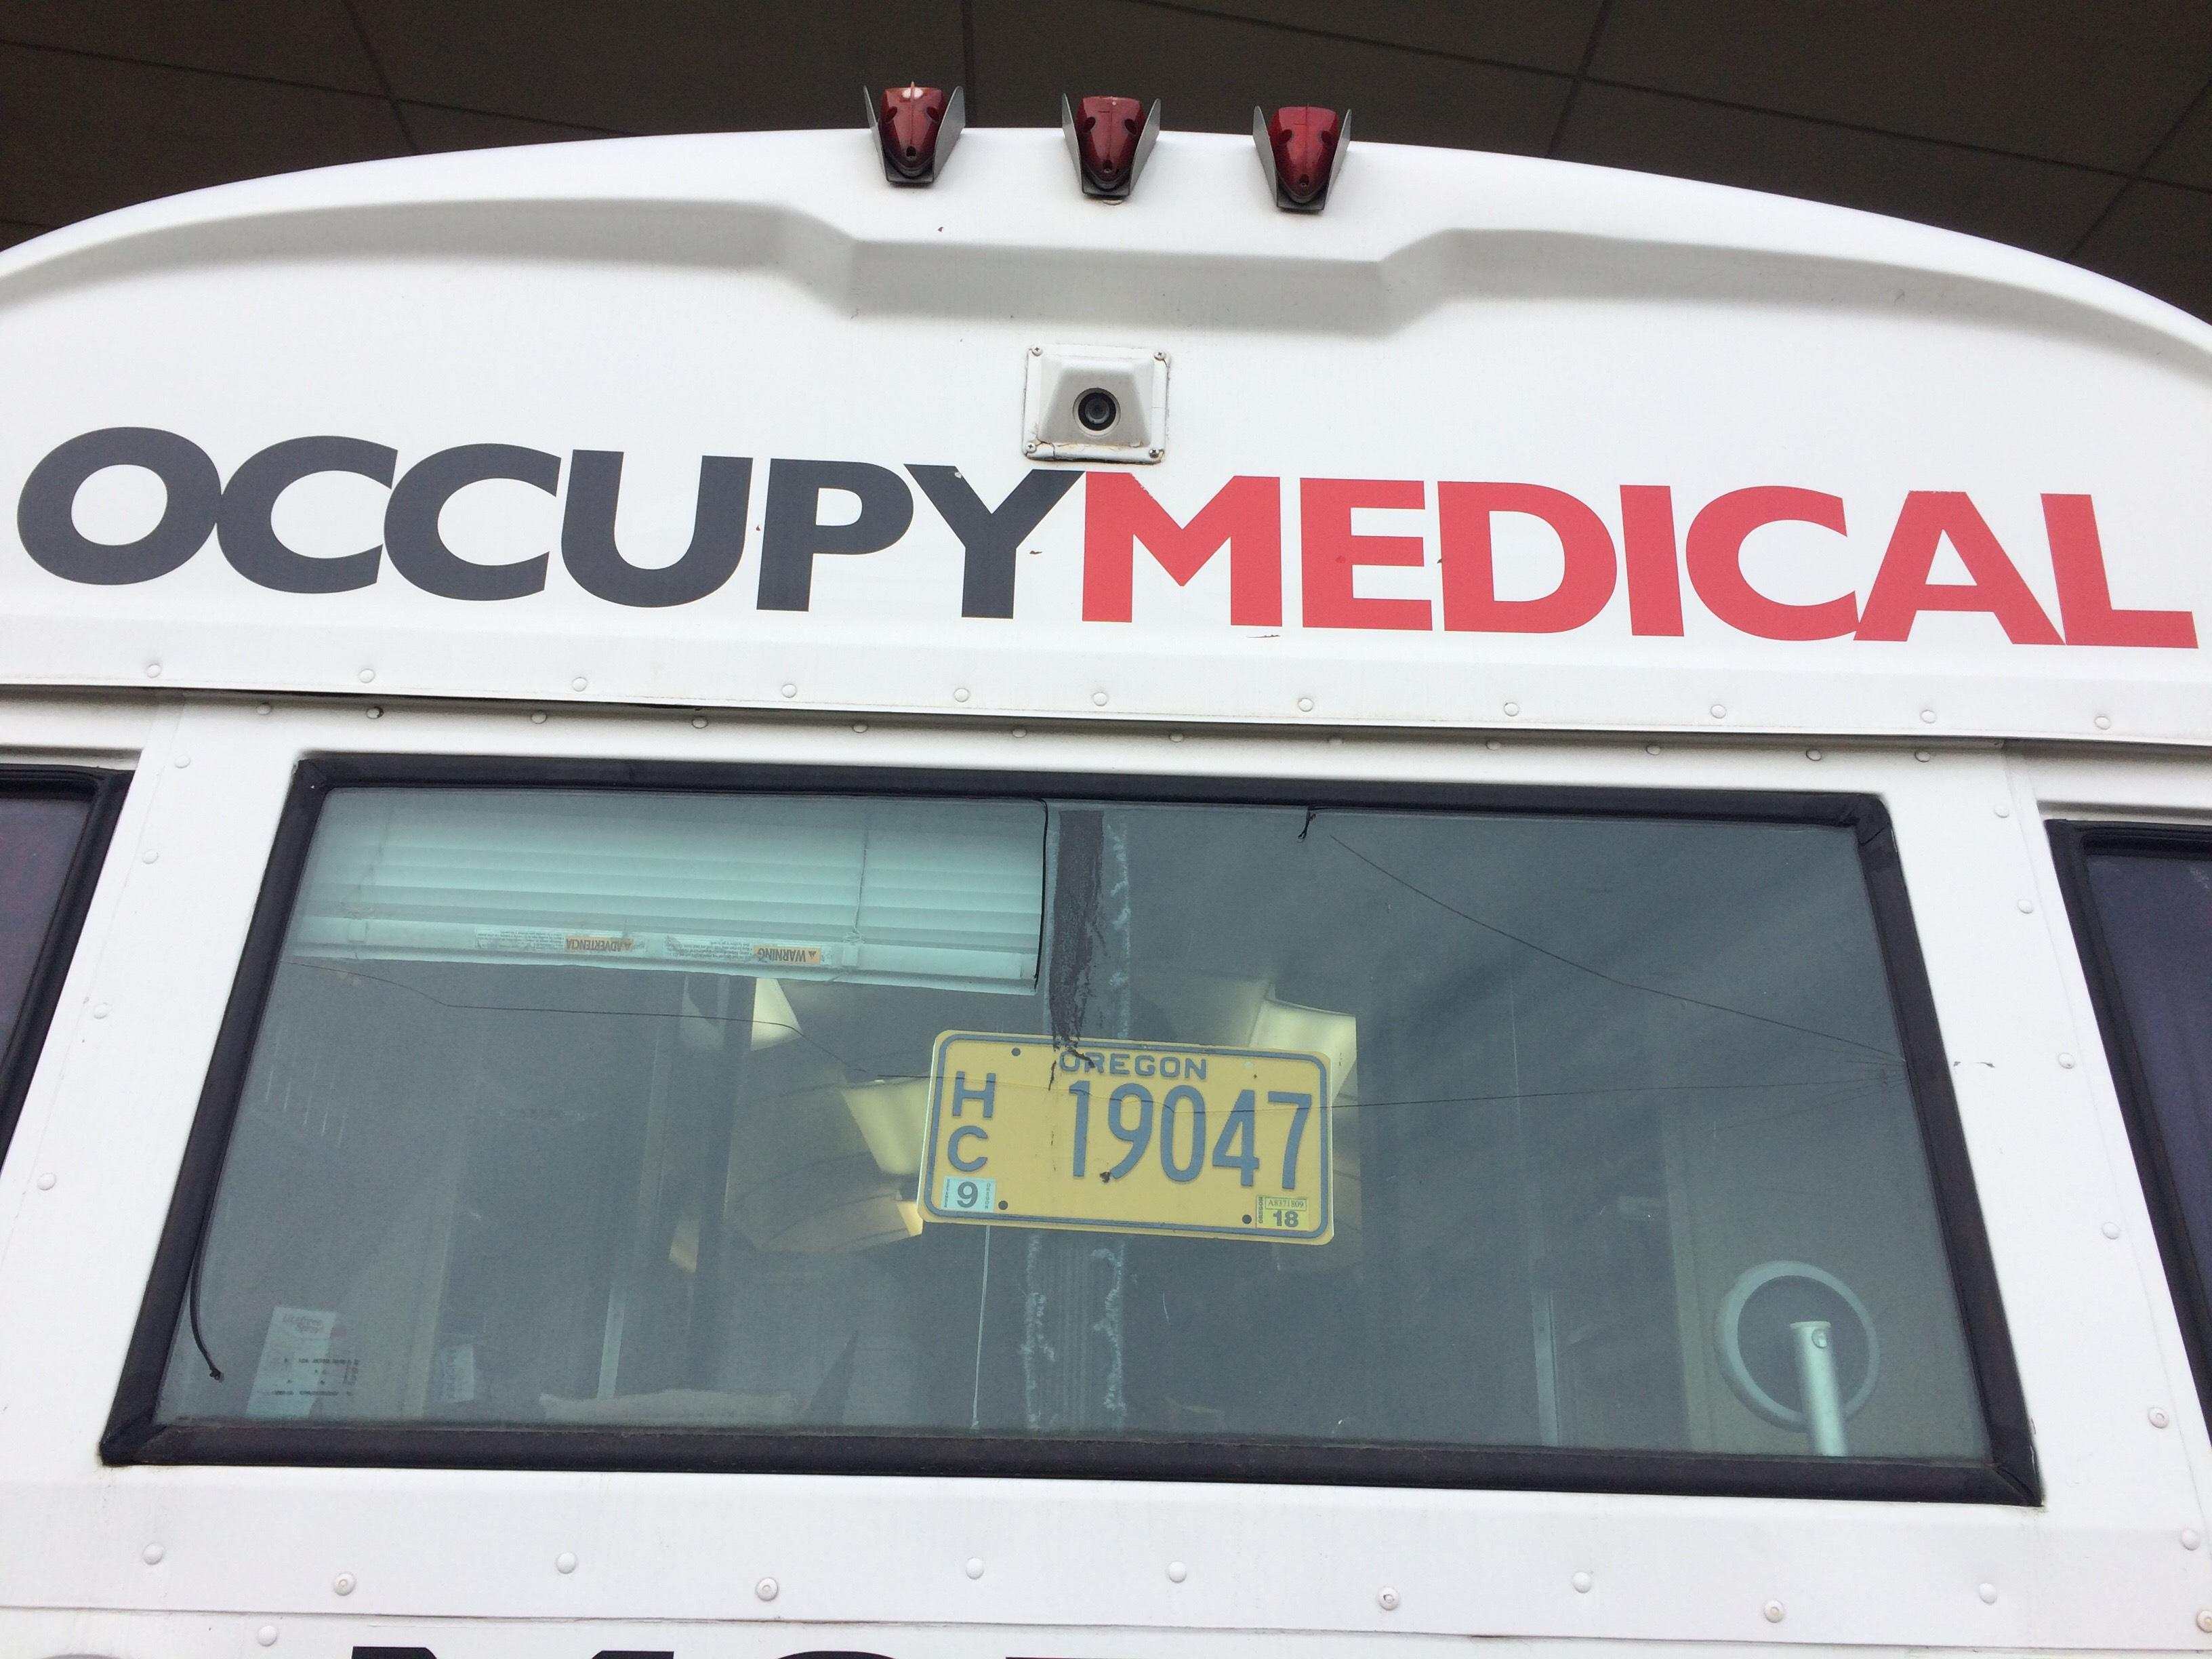 Occupy Medical offers free flu shots to those in need with a mobile clinic at Washington Jefferson Park in Eugene.